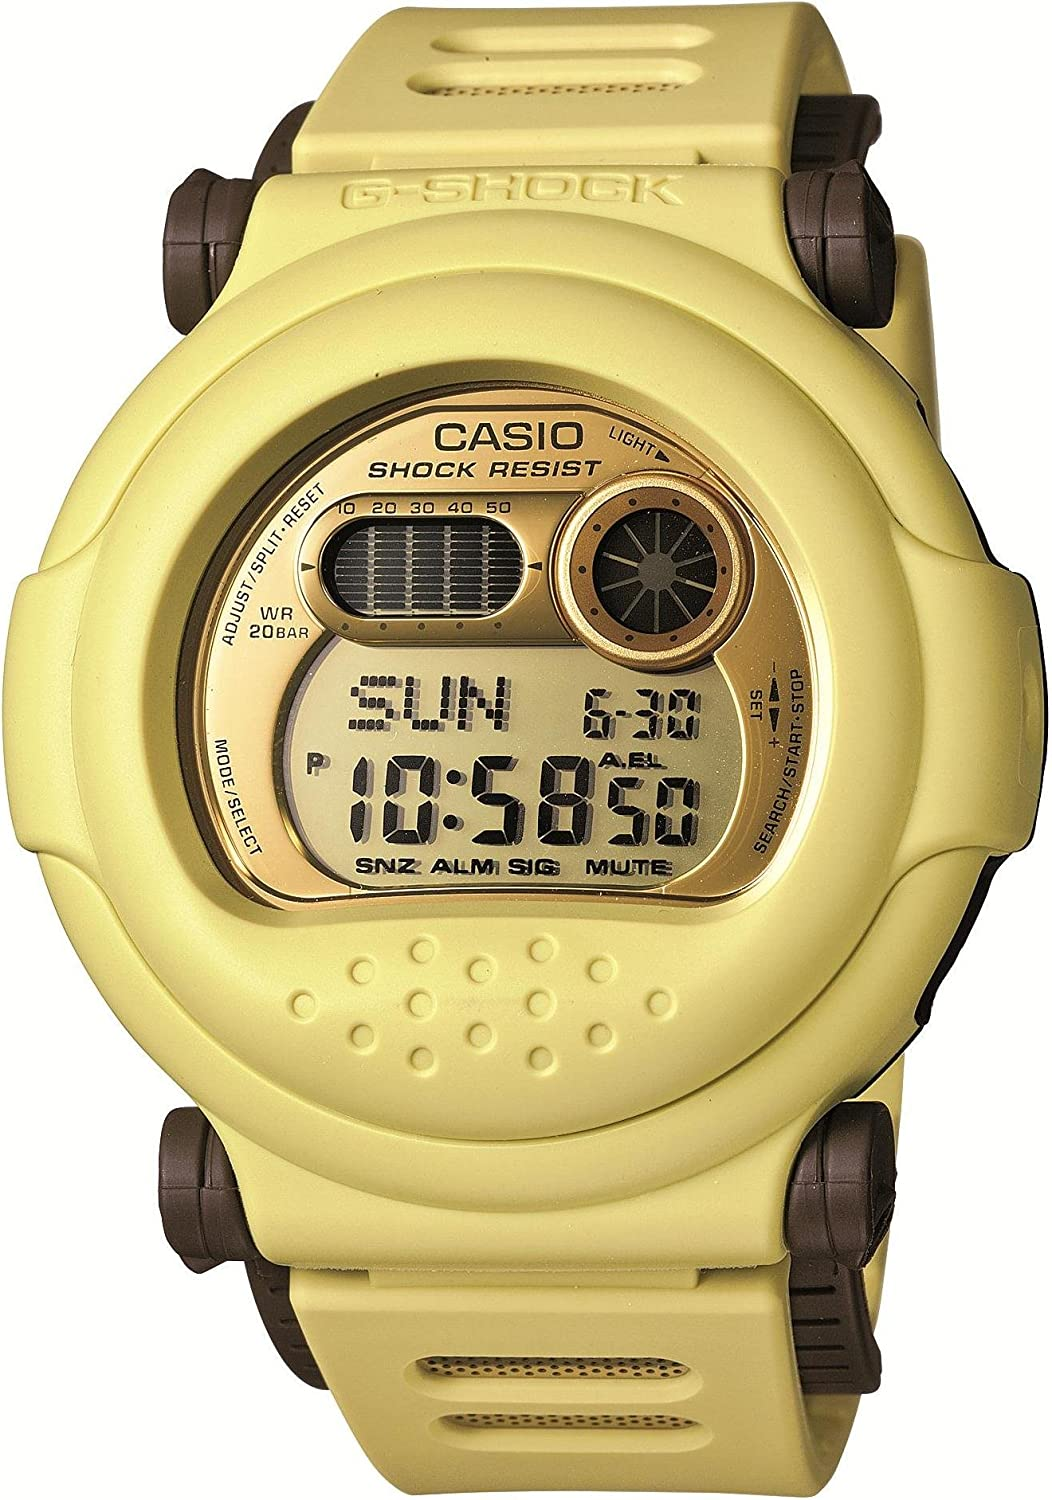 Casio G-SHOCK Winter Gold Series G-001CB-9JF Japan Import